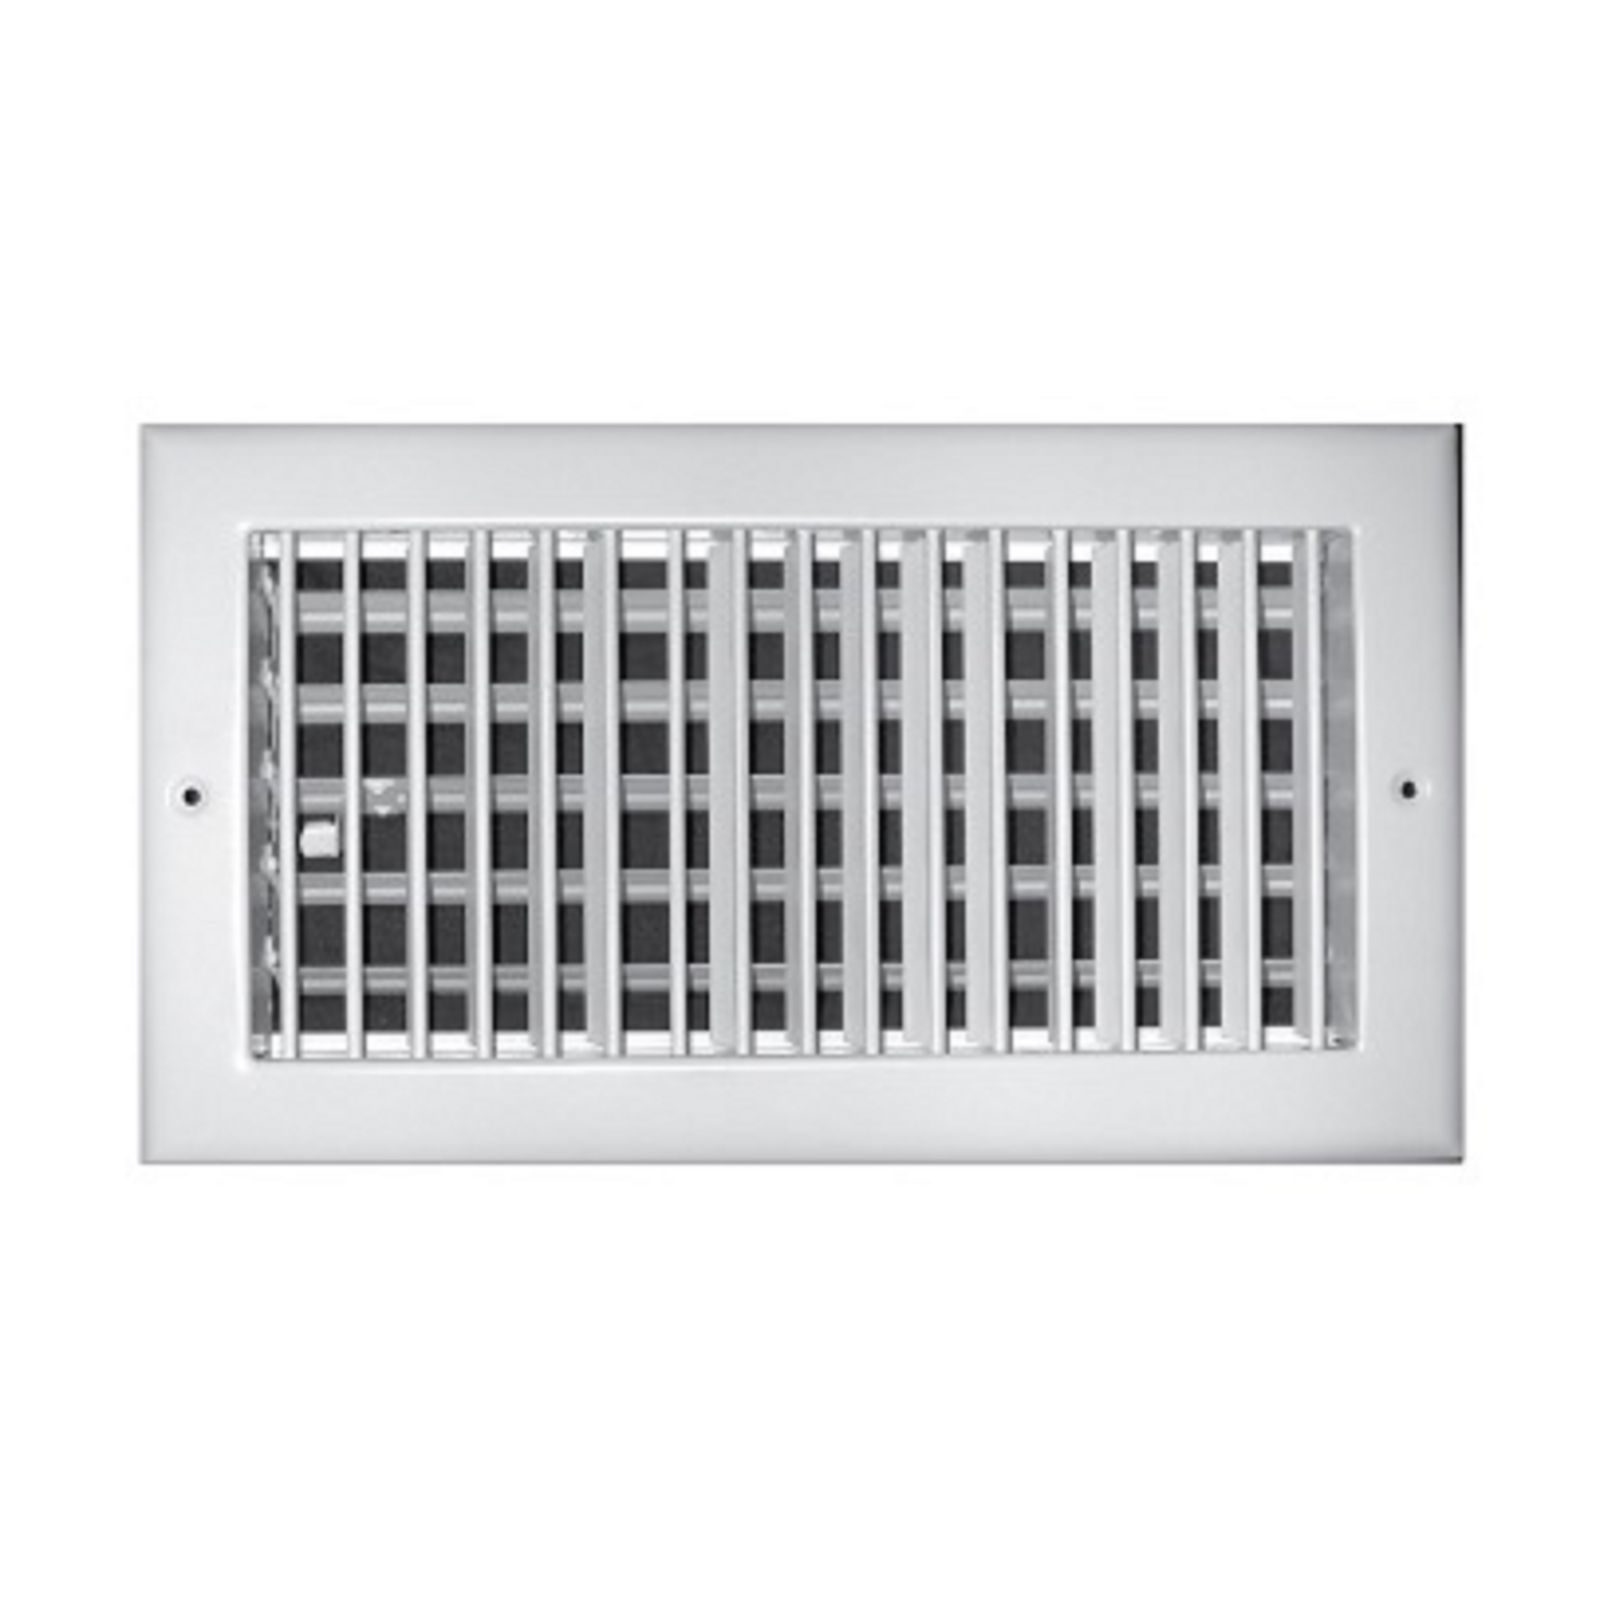 "TRUaire A210VM 08X04 - Aluminum Adjustable 1-Way Wall/Ceiling Register, Vertical, Multi Shutter Damper, White, 08"" X 04"""